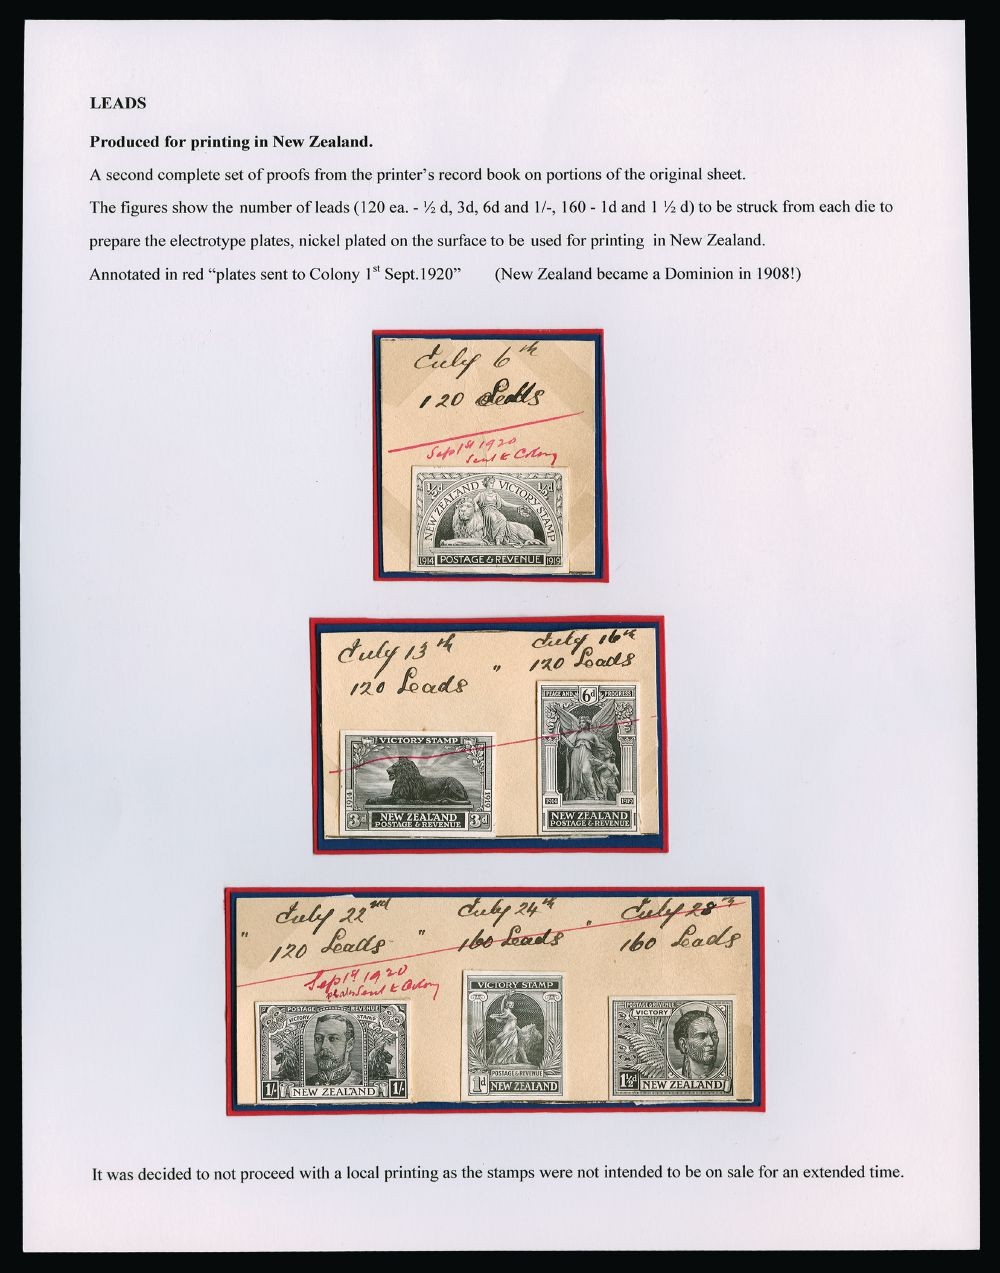 NEW ZEALAND 1920 SG453/8 Proof: 1920 (July 6 - 28) set of six stamp-size die proofs in black on glazed card for the 1920 Victory issue, affixed to three pieces from the De La Rue day book, each with M/S dates and details of the leads taken (160 for 1d, 1½d; 120 for other values). The pieces additionally with diagonal line and endorsement 'Sep 1st 1920 Sent to Colony' in RED M/S (except 3d & 6d piece without date), being the invoice date for the plates. A unique and important record, documenting the manufacture of a second set of plates intended for local printings. Image courtesy of Stanley Gibbons Ltd.